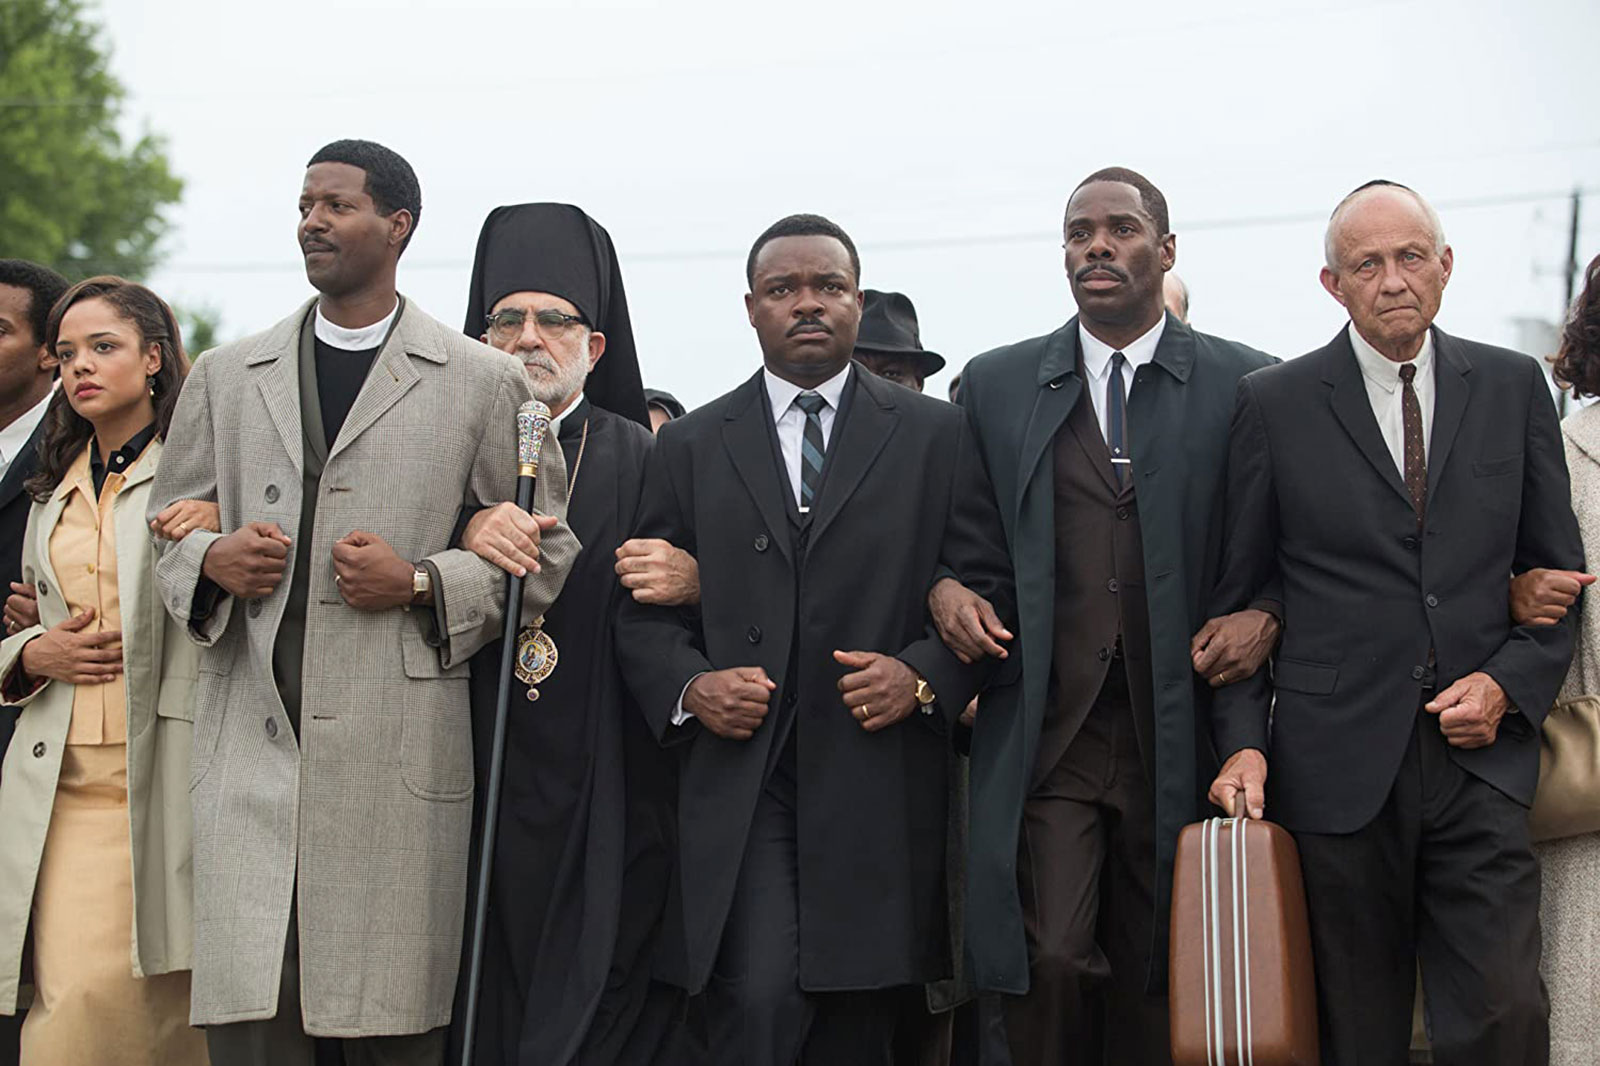 """A still from """"Selma,"""" directed by Ava DuVernay."""